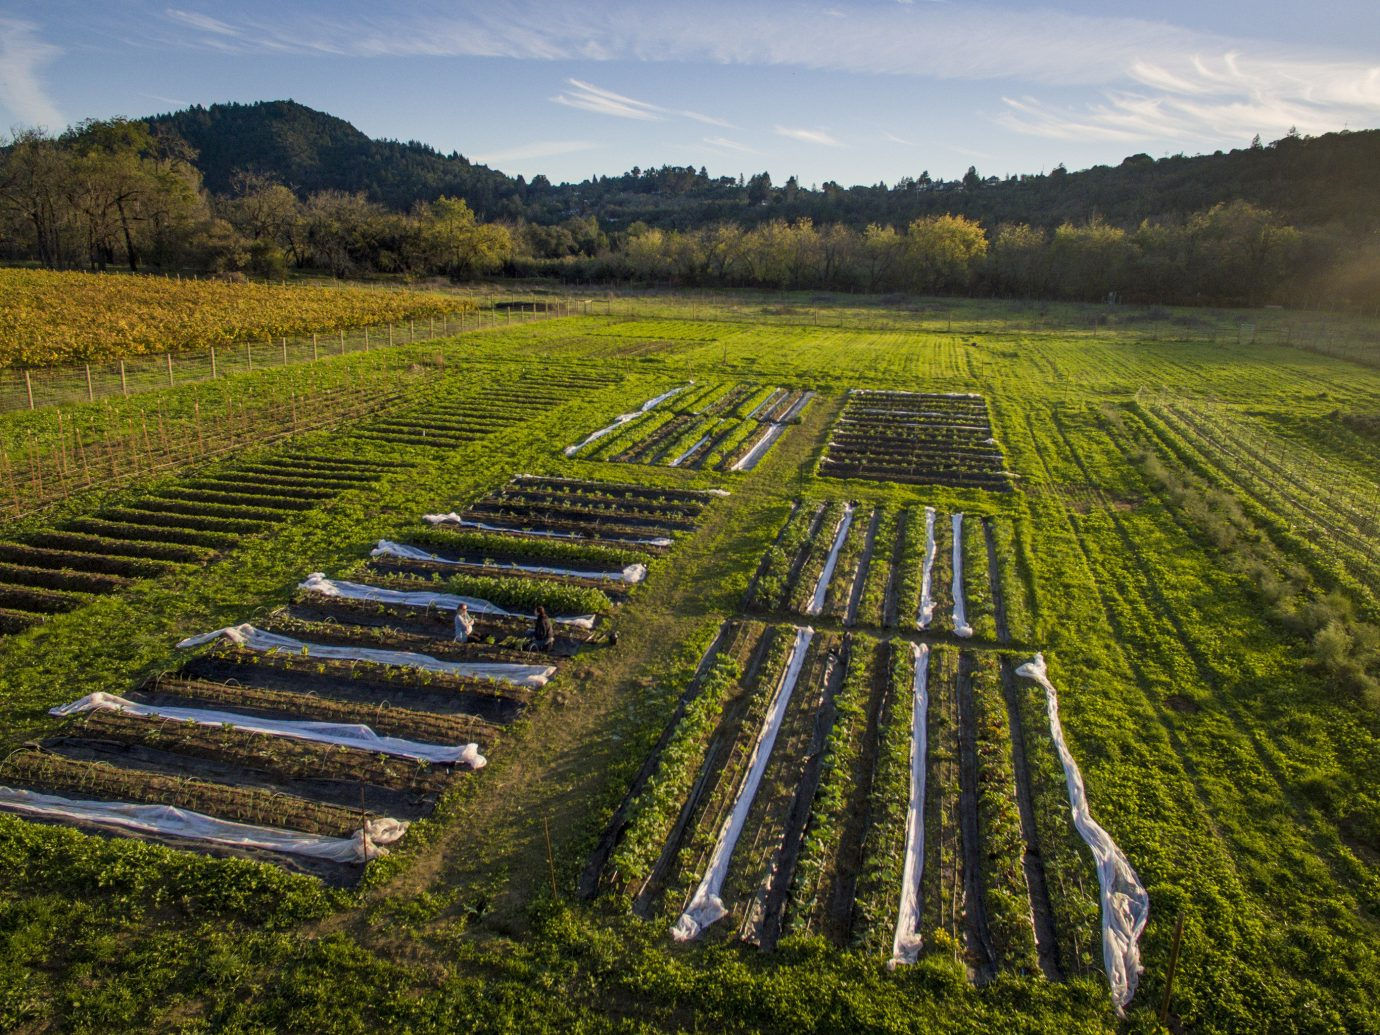 Food + Drink grass outdoor sky track highland agriculture field tree hill rural area plain plantation landscape soil aerial photography Farm paddy field meadow Vineyard valley lush flower traveling railroad long